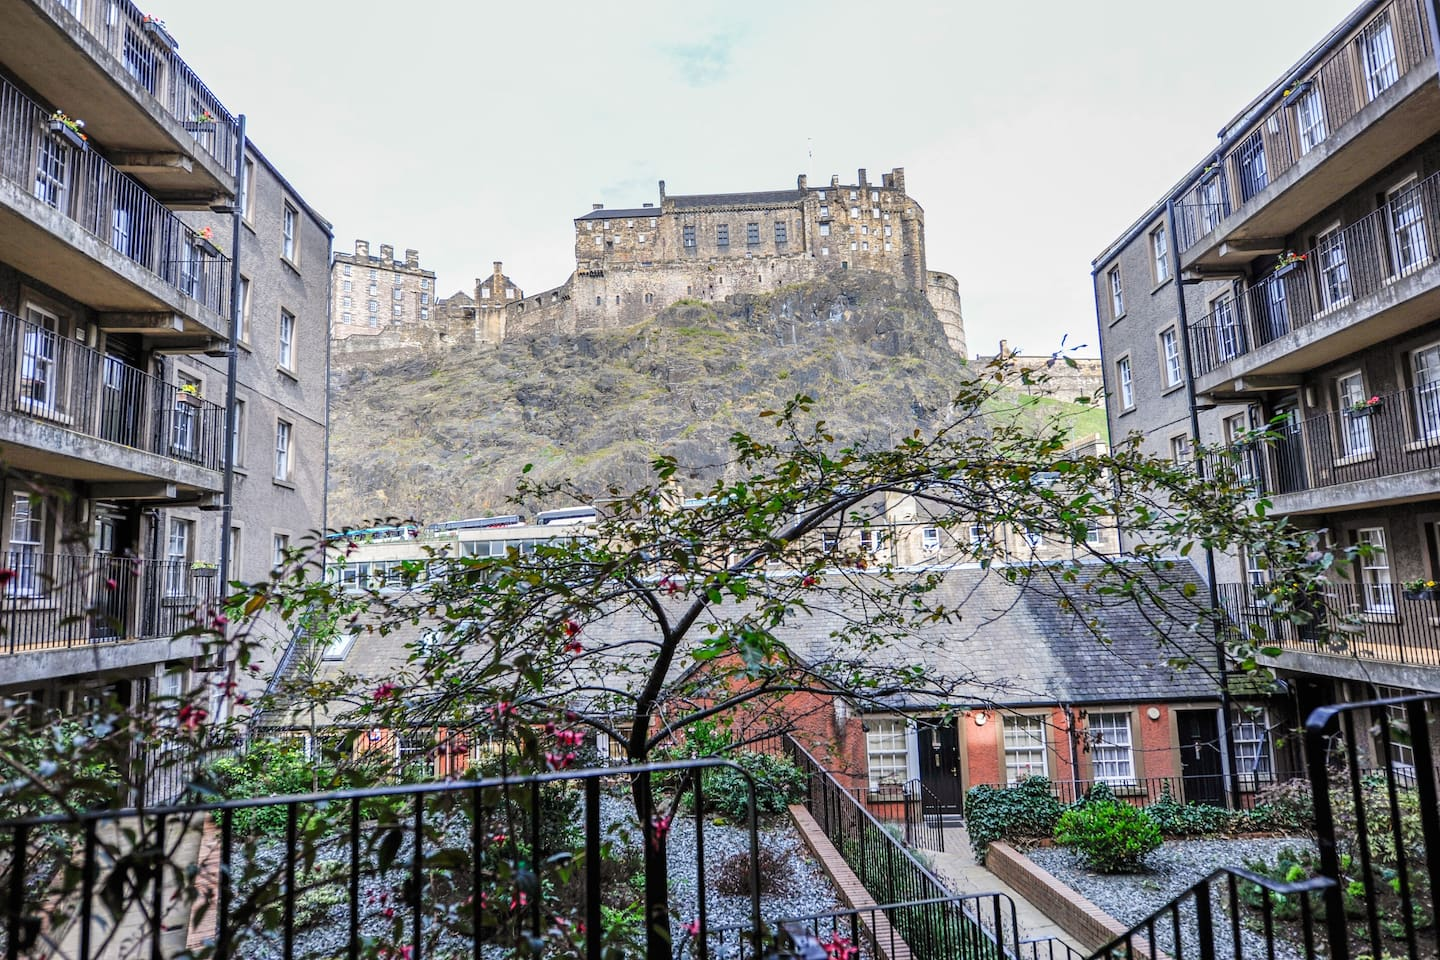 Fabulous castle view from the courtyard.